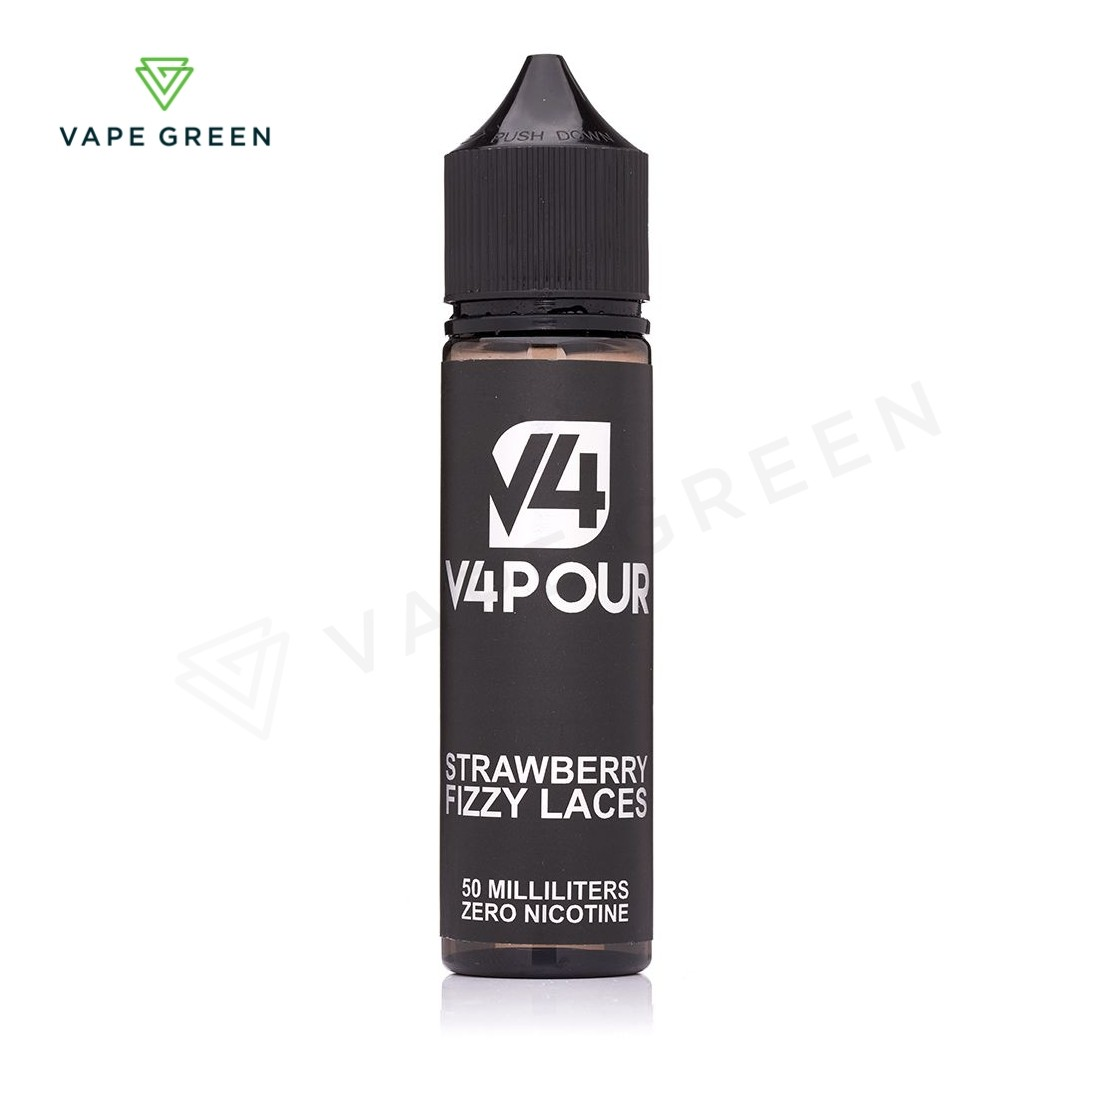 Strawberry Fizzy Laces E-liquid by V4 Vapour 50ml